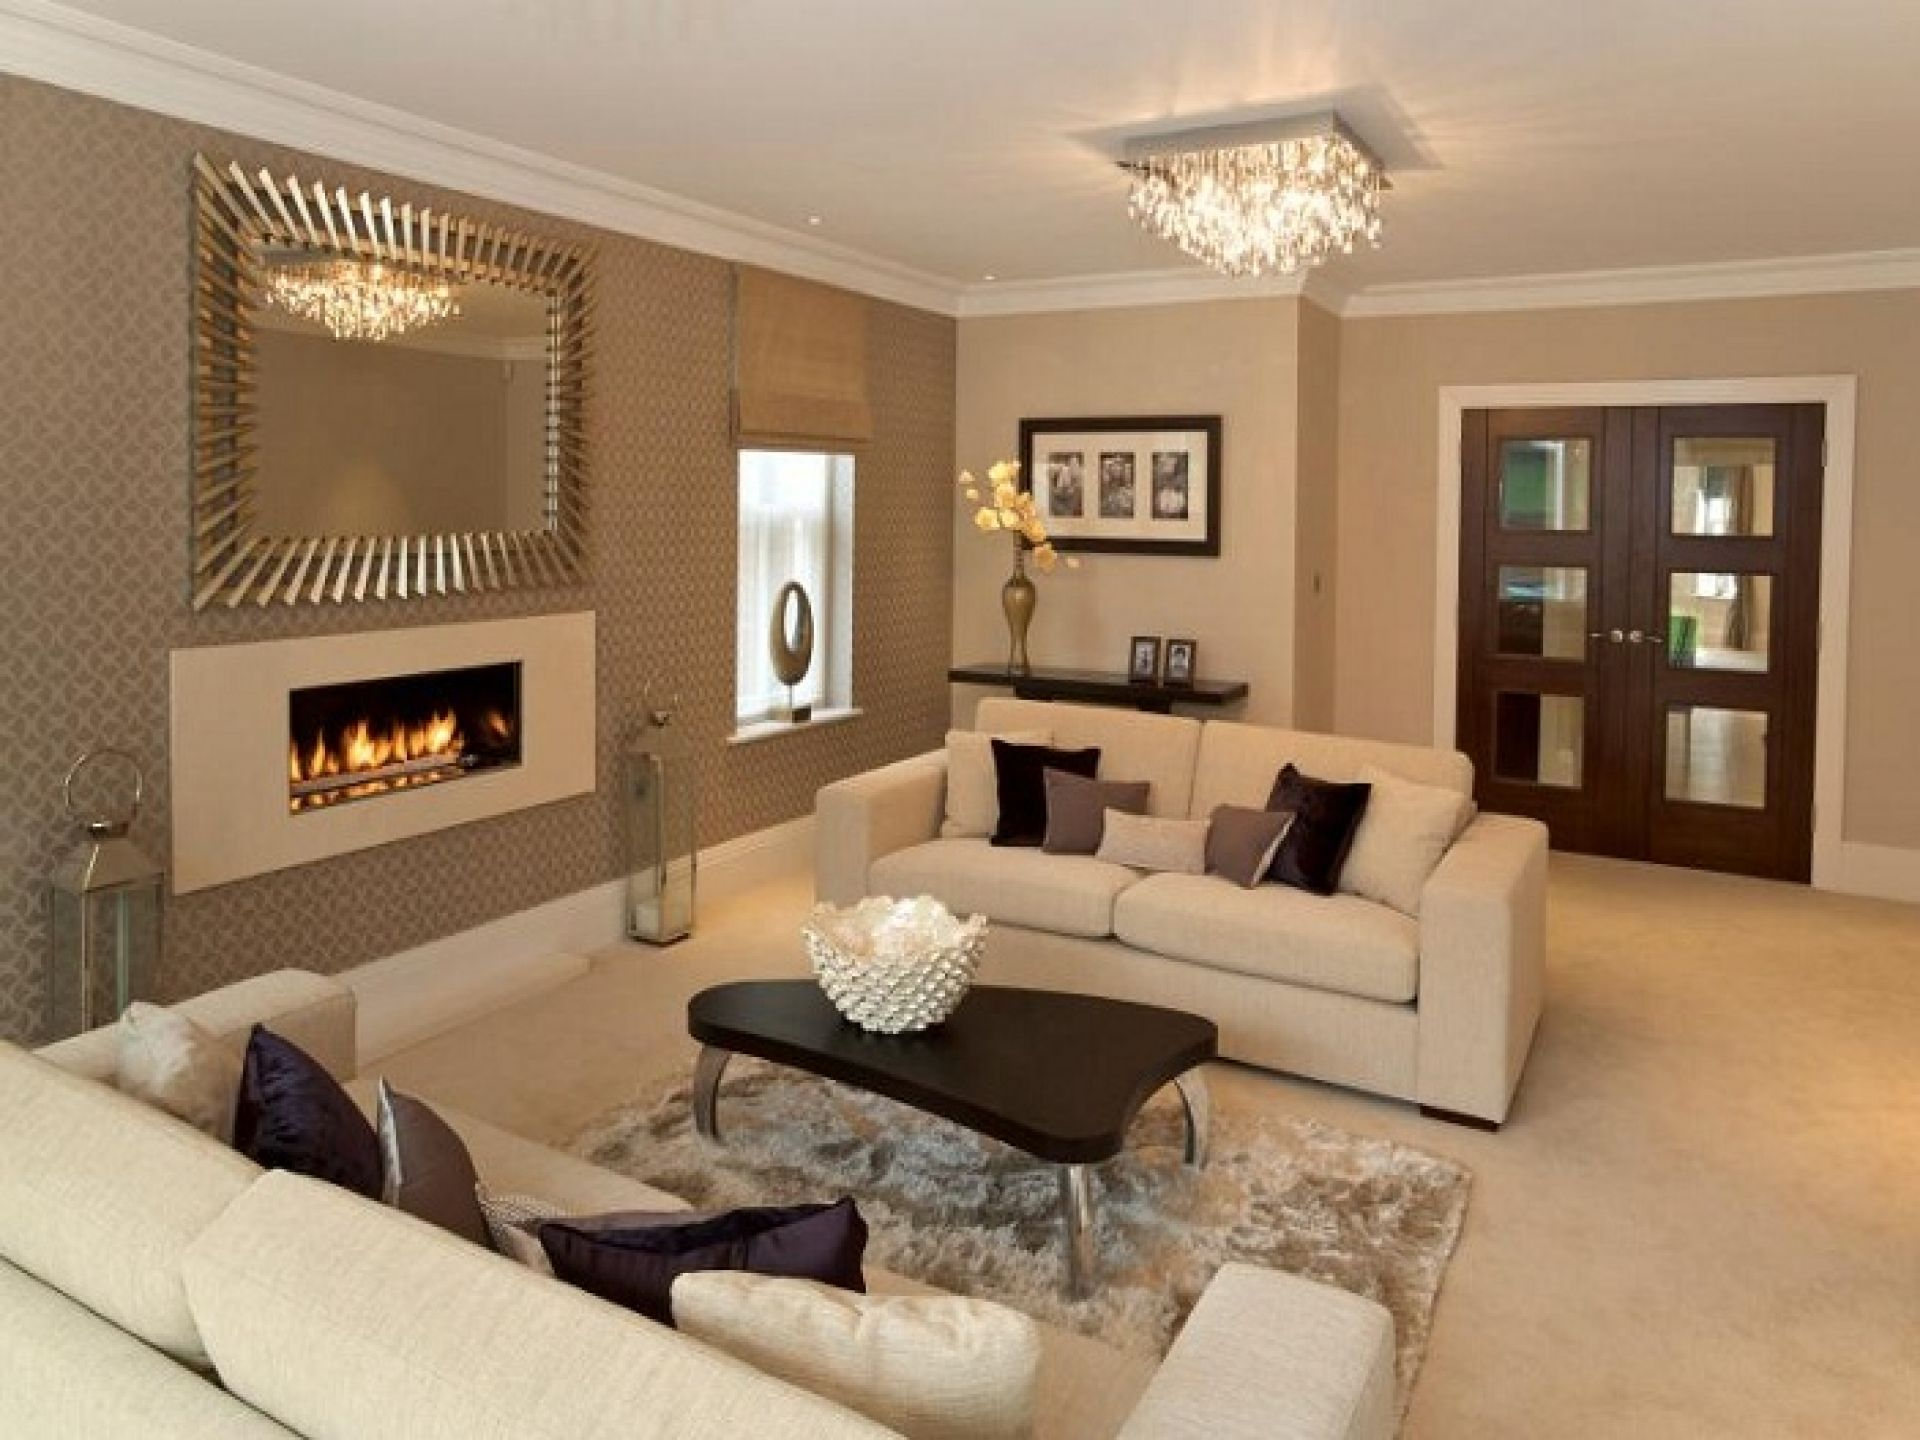 light-brown-wall-paint-livingroom-luxury-ceiling-glass-lights ...